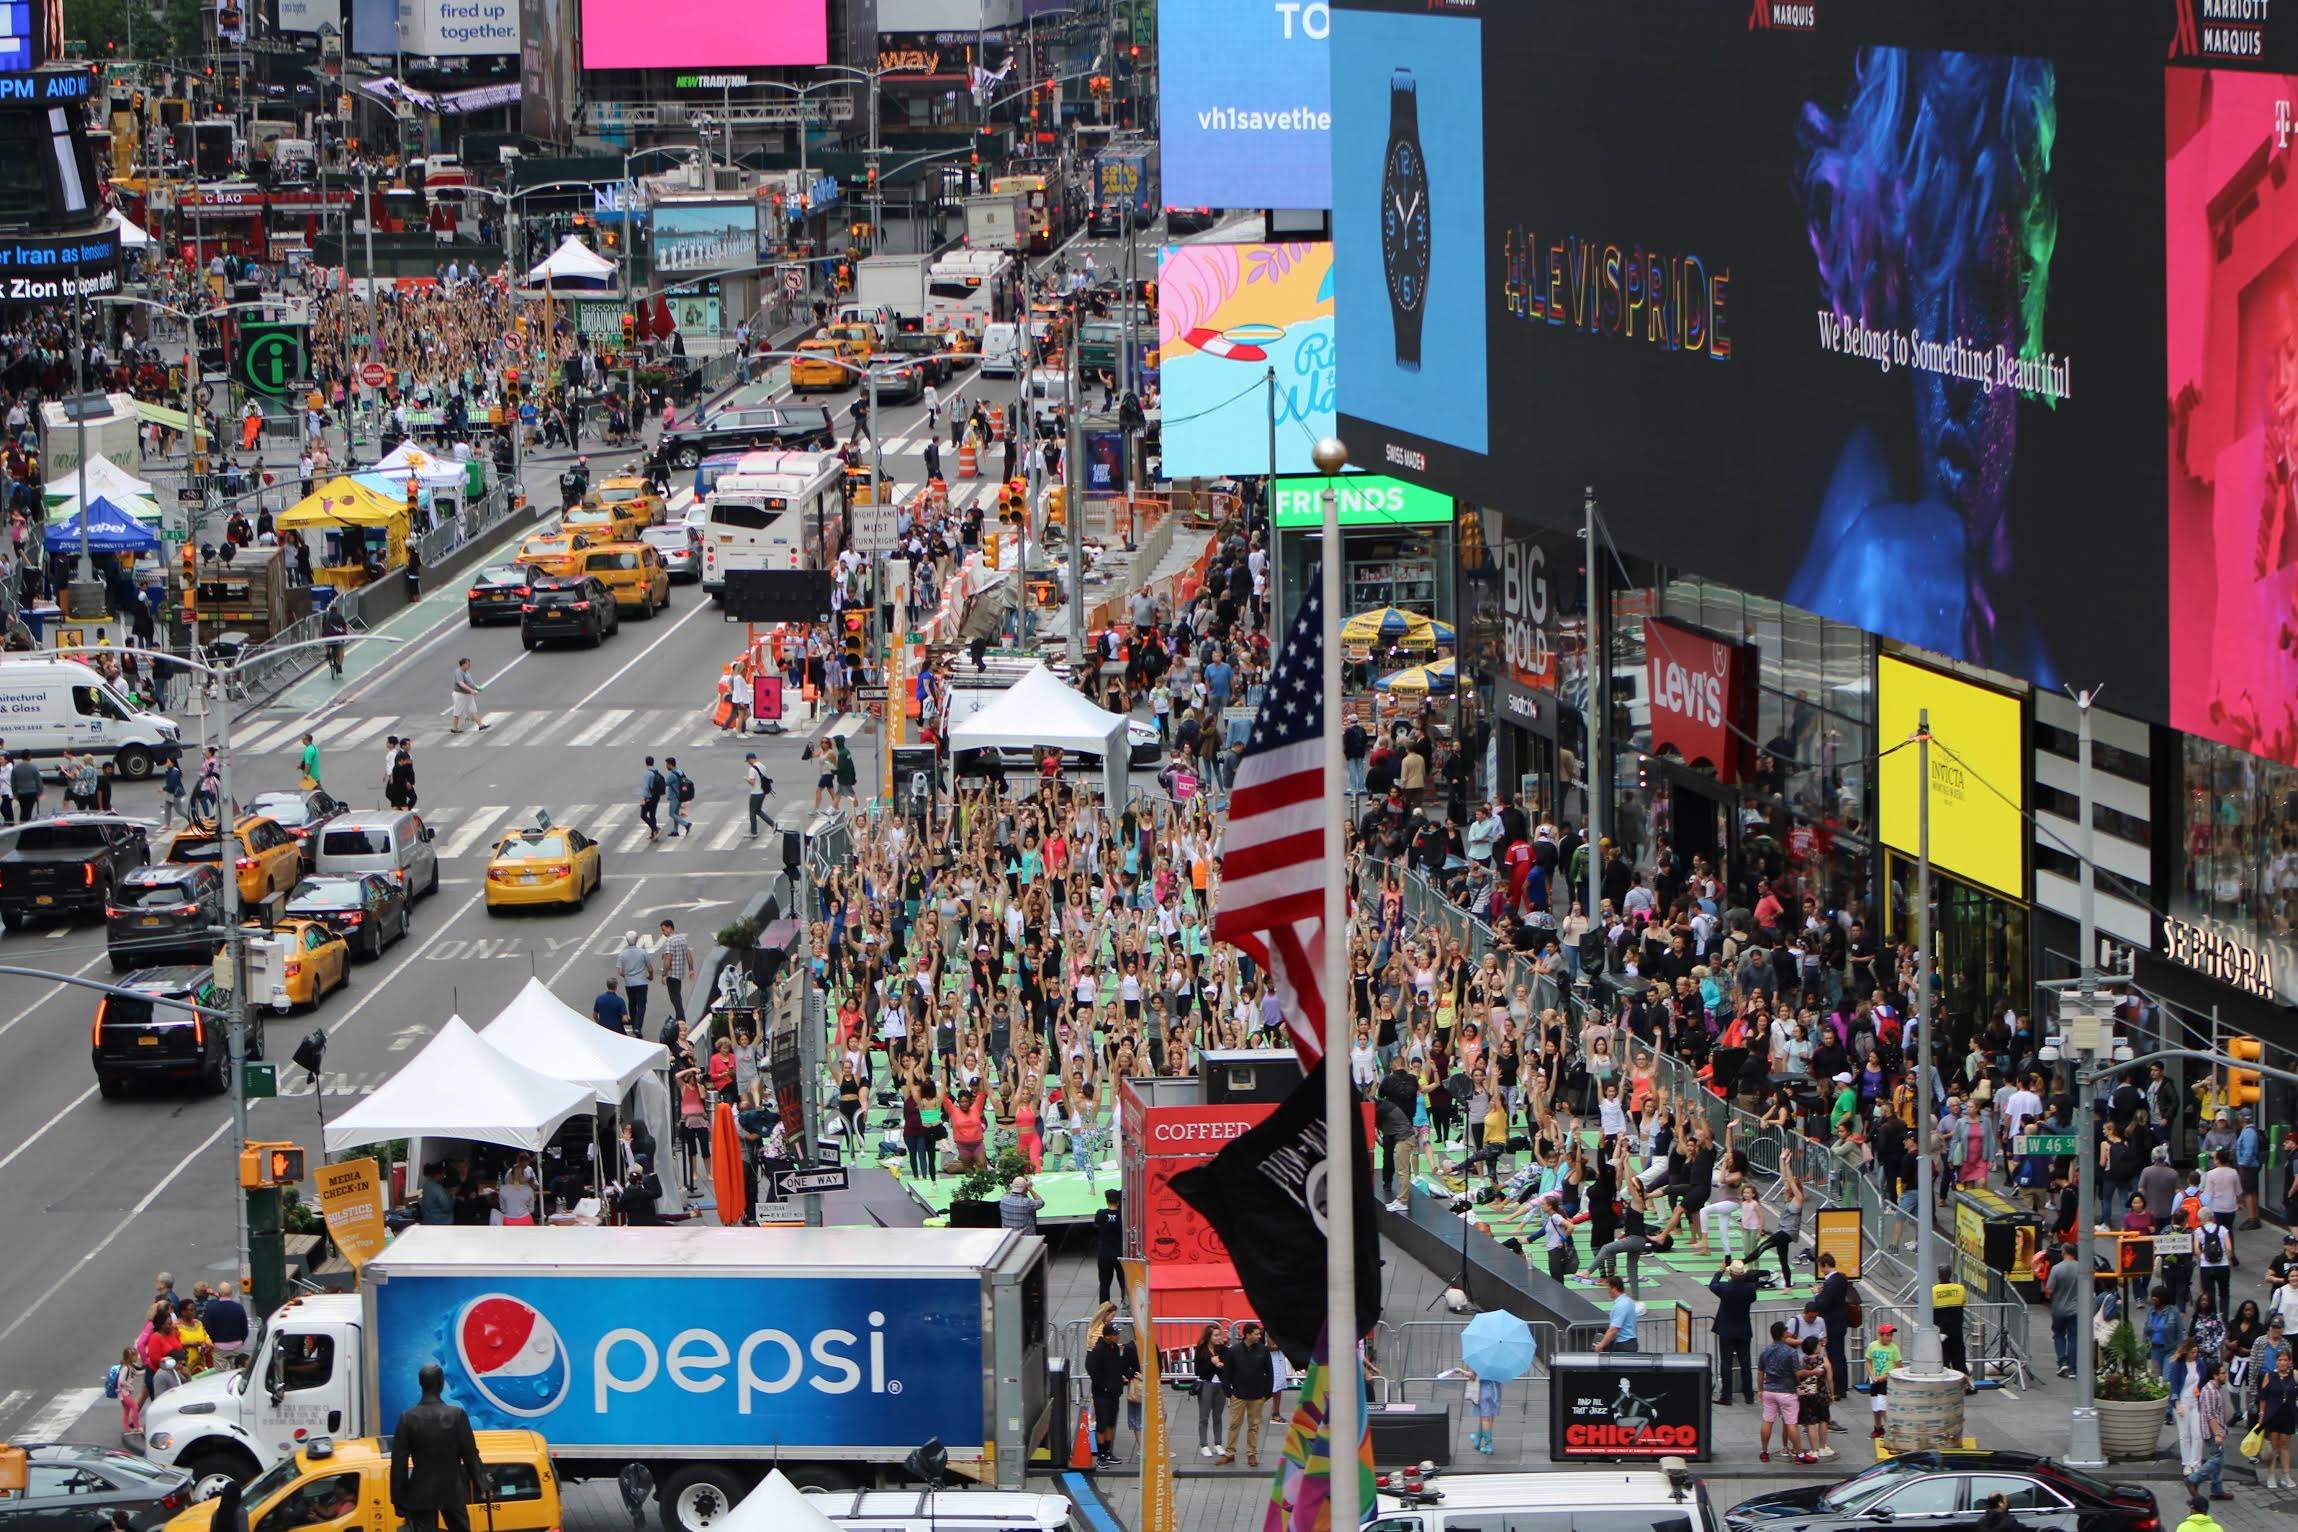 An aerial view of the thousands of yoga participants this year celebrating International Yoga Day, in Times Square, New York. Photo courtesy: Kaustubh Shankar